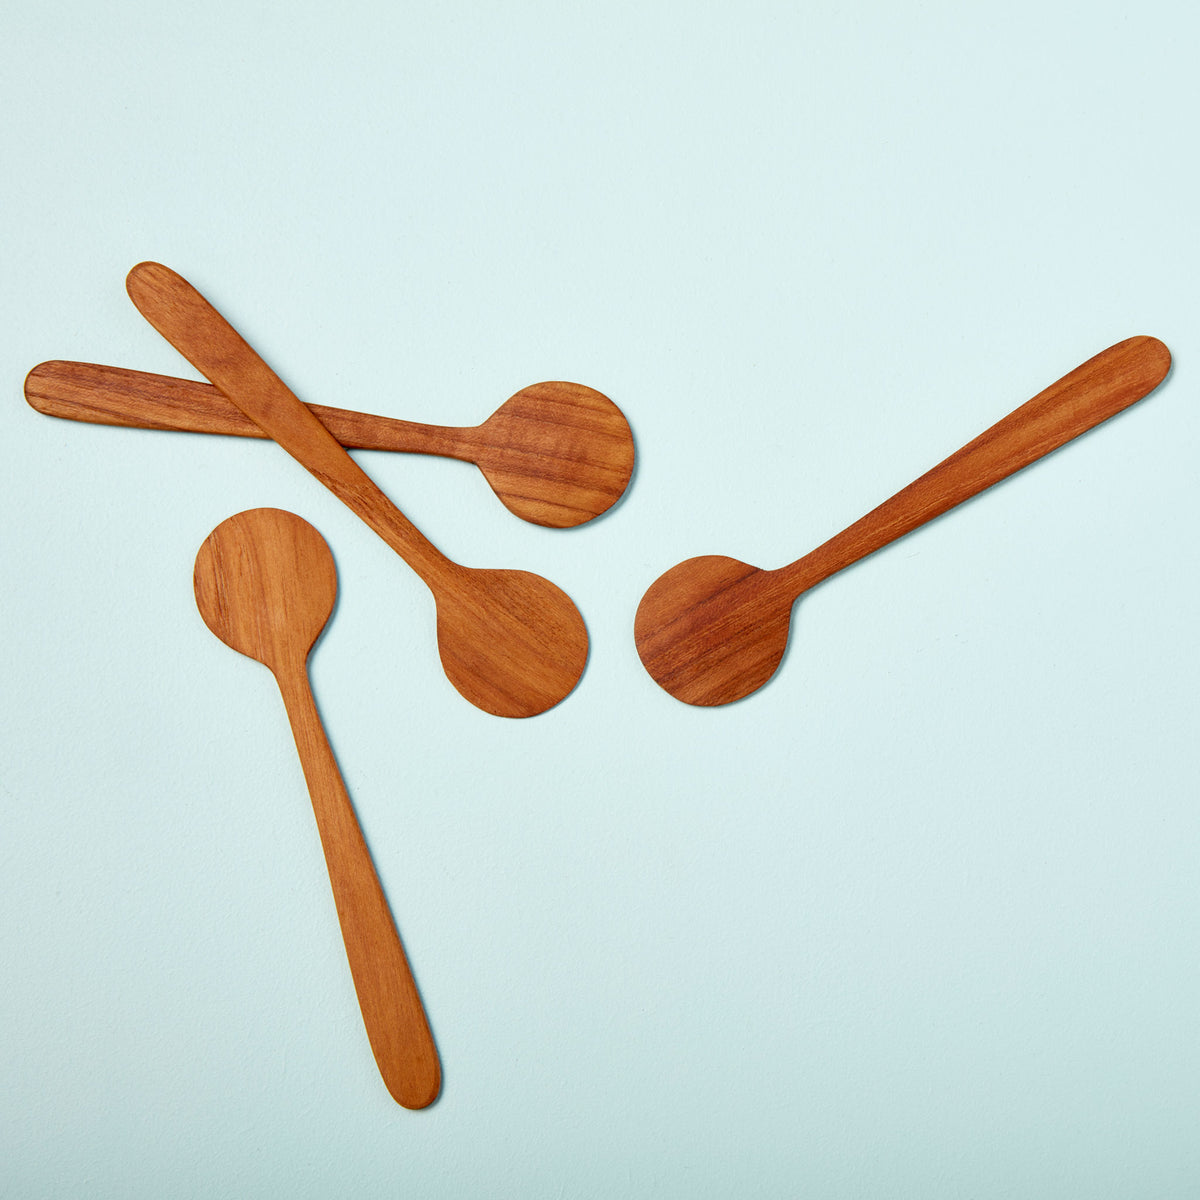 Teak Round Spreaders, Set of 4